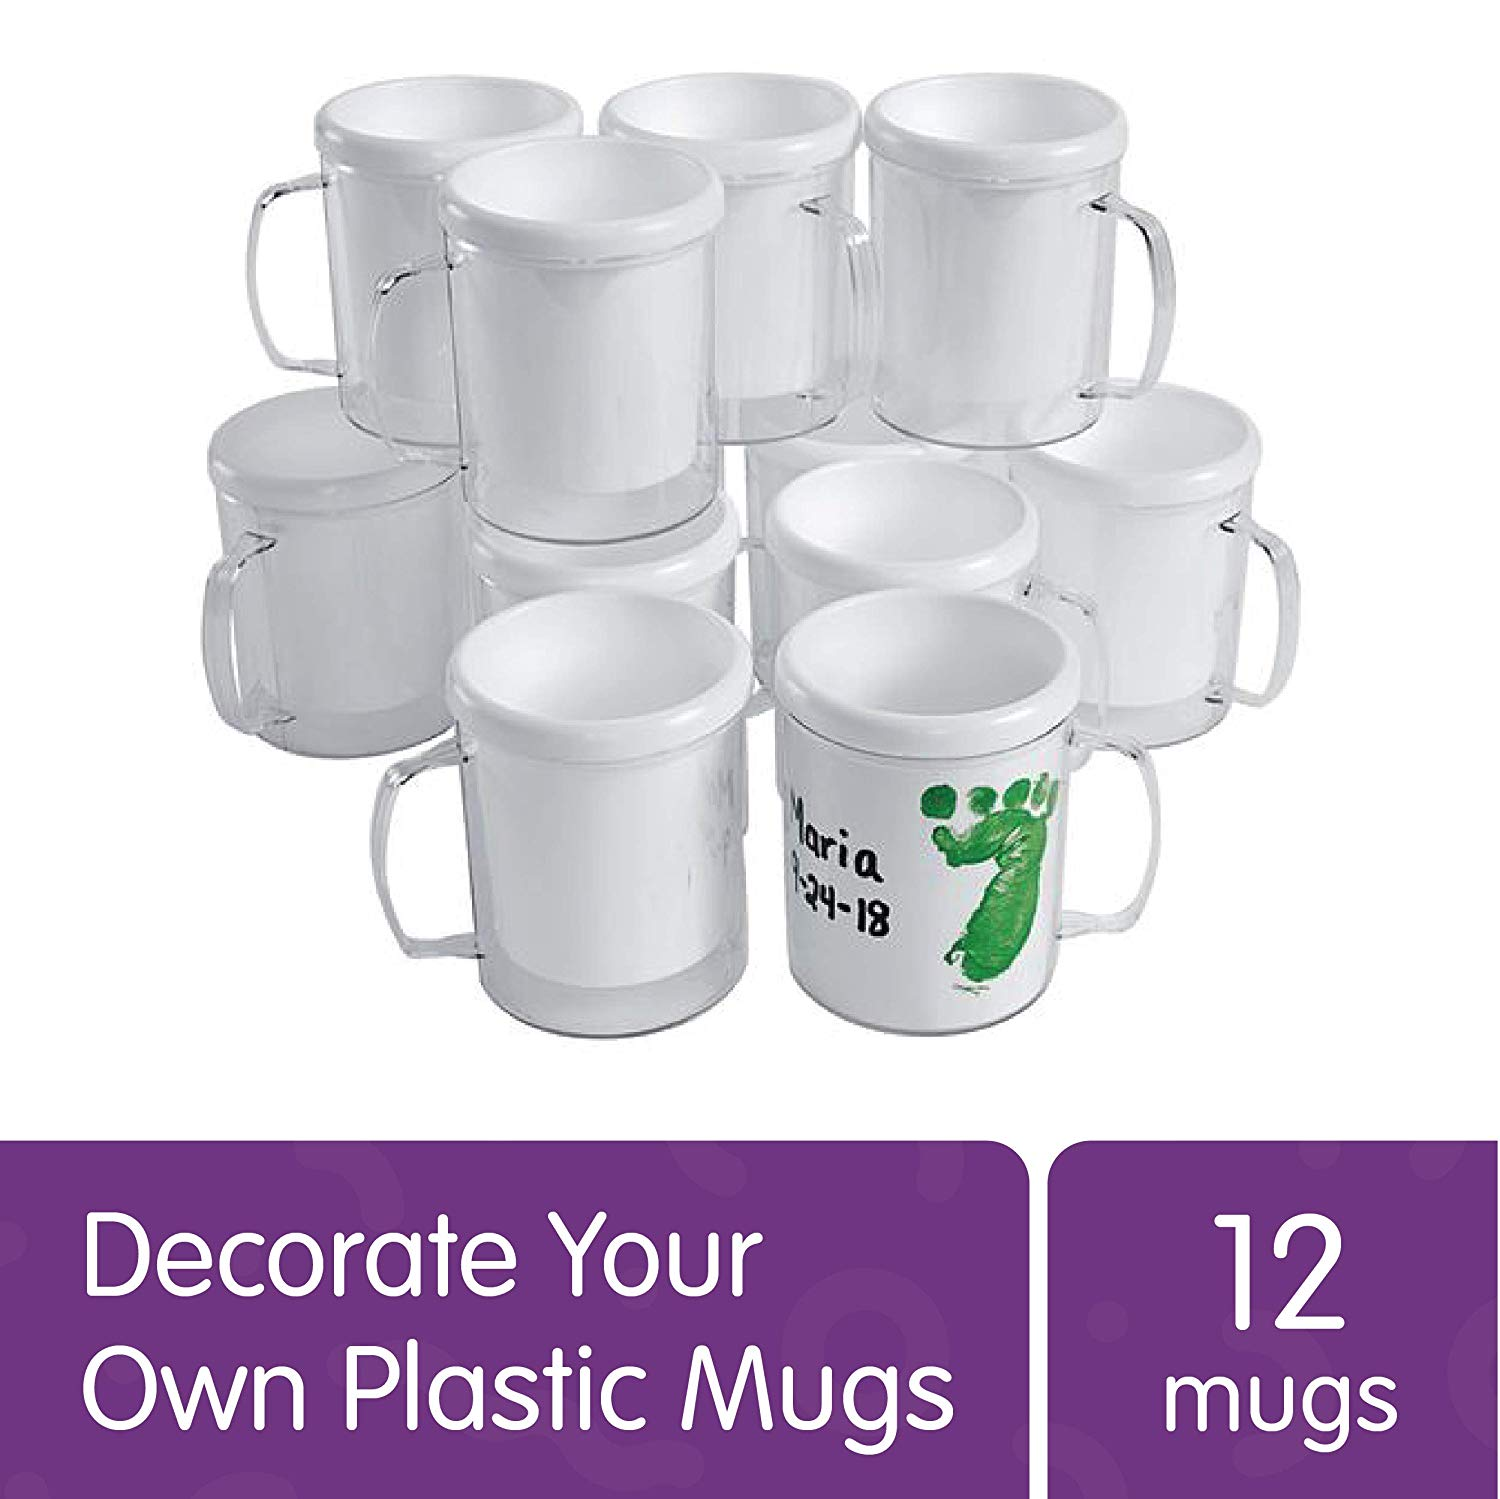 Colorations-Decorate-Your-Own-Plastic-Mugs-Set-of-12-for-Kids-Gifts-Mother-s-Day-Father-s-Day-Arts--Crafts-Craft-Project-Personalization-